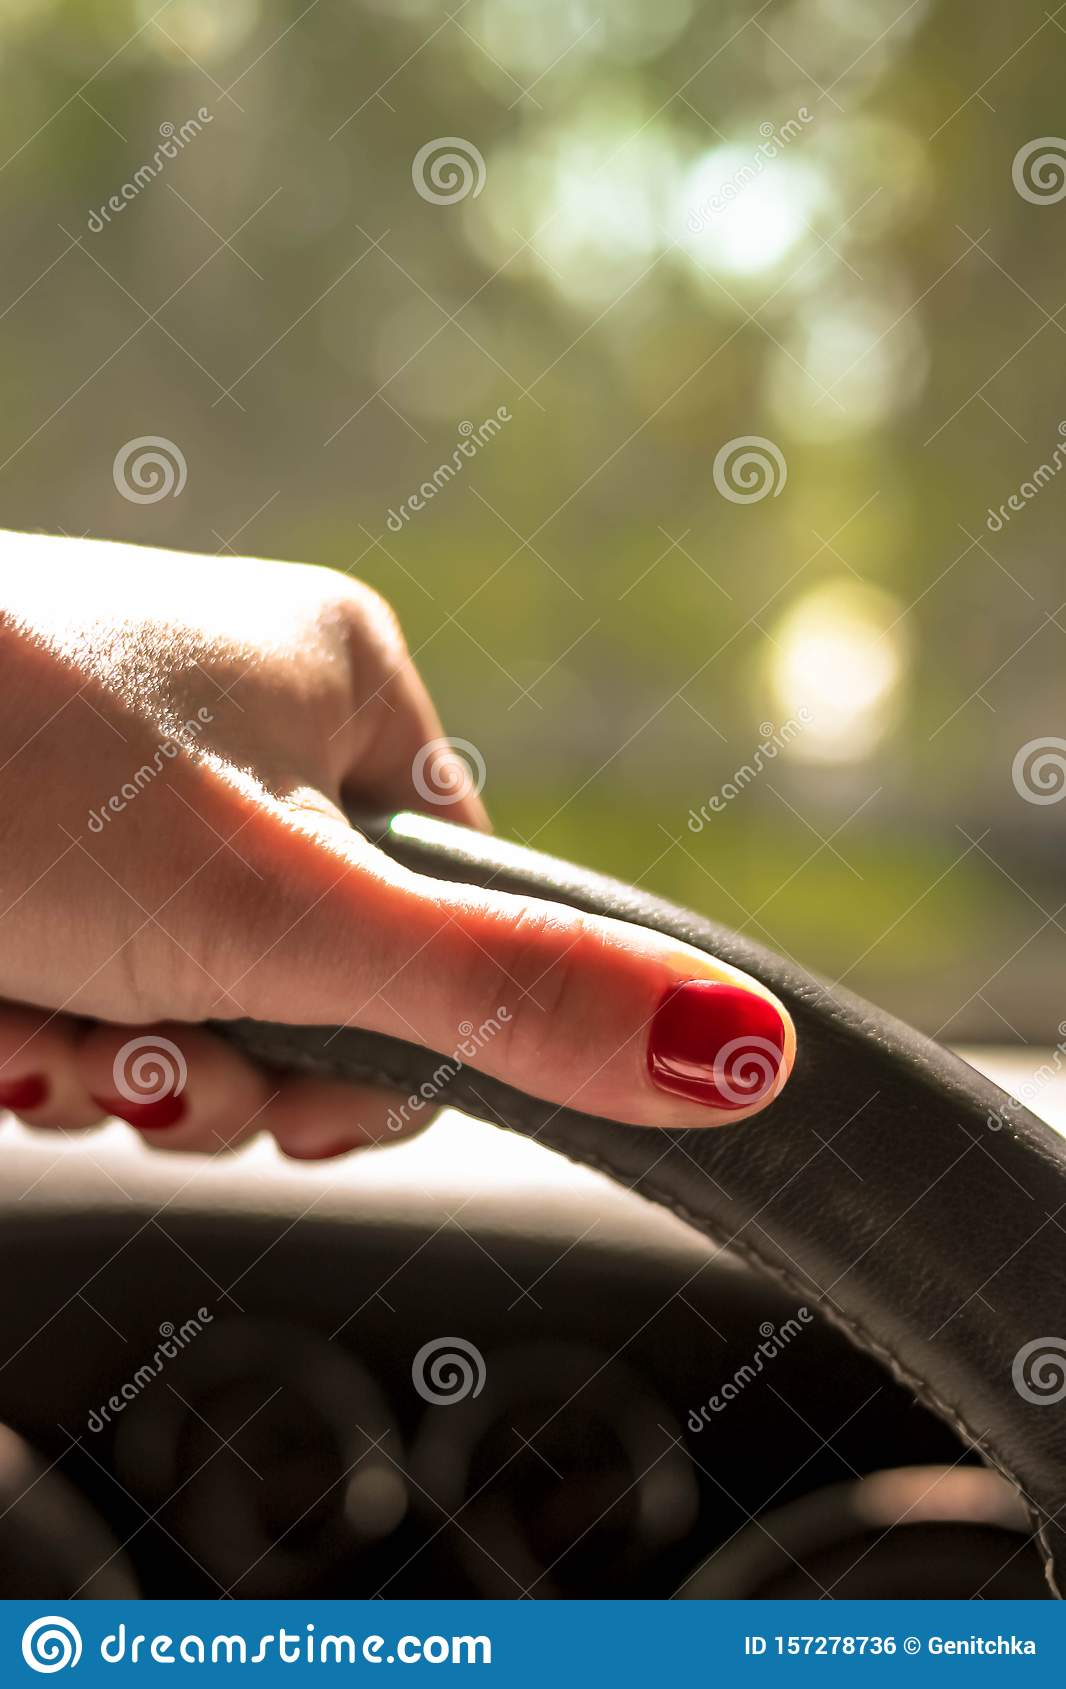 Woman Driving A Car With One Hand Holding The Steering Wheel Stock Photo Image Of Safety Nails 157278736